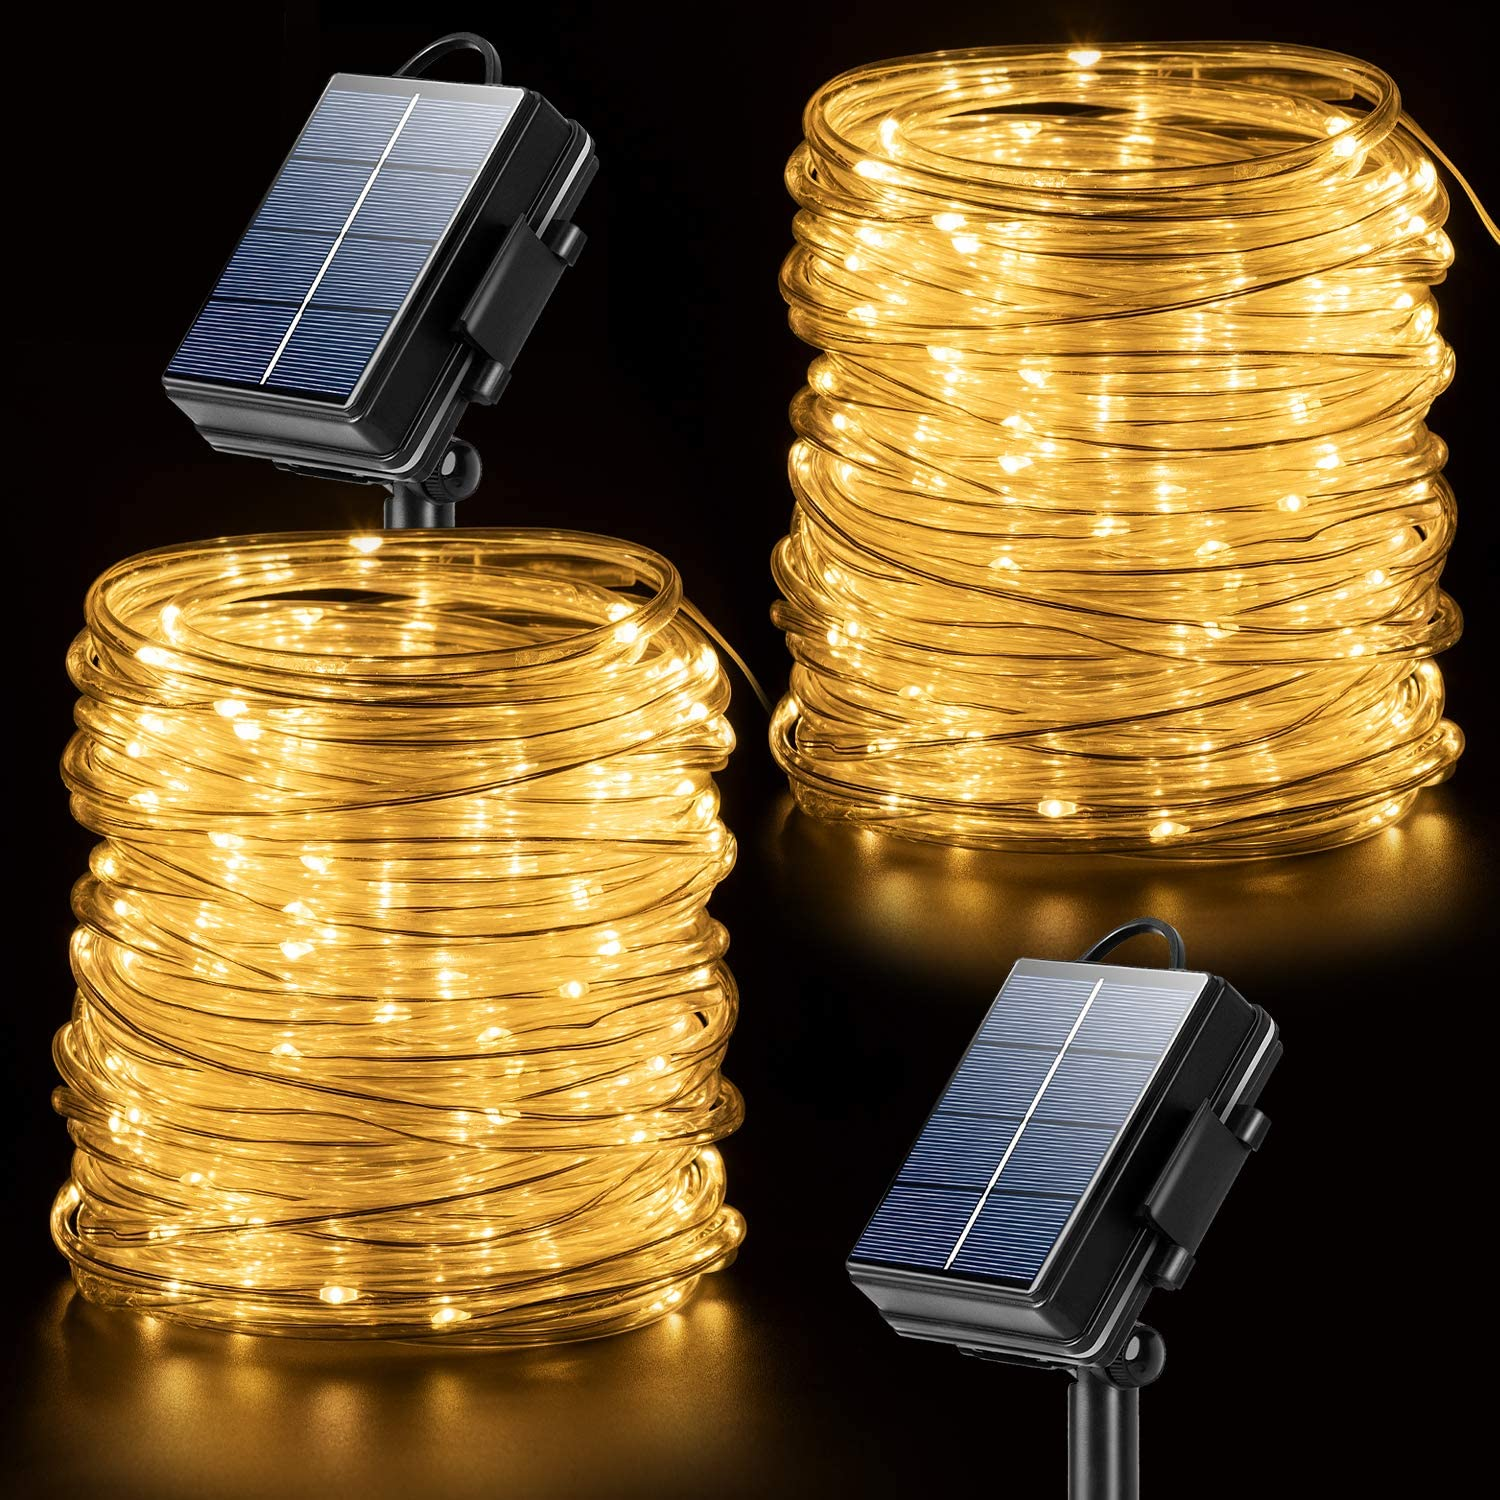 Amazon Com Solar Rope Lights Outdoor String Lights 2 Pack 65 6ft 20m 200 Led Waterproof Solar Rope Tube For Garden Fence Yard Party Wedding Christmas Tree Décor Home Kitchen